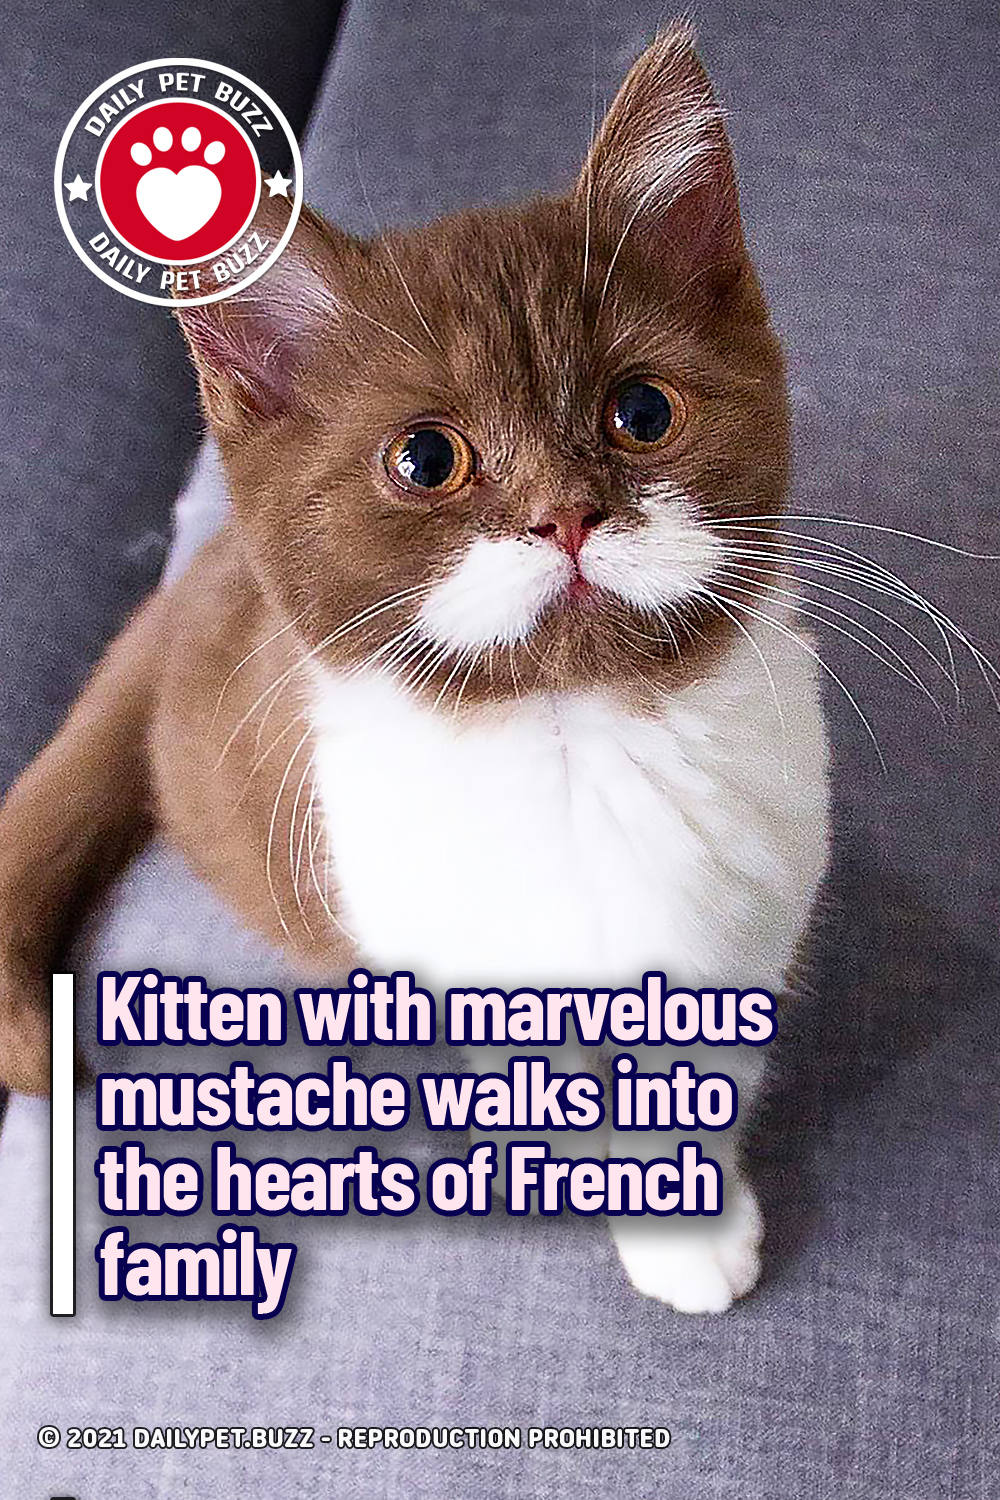 Kitten with marvelous mustache walks into the hearts of French family